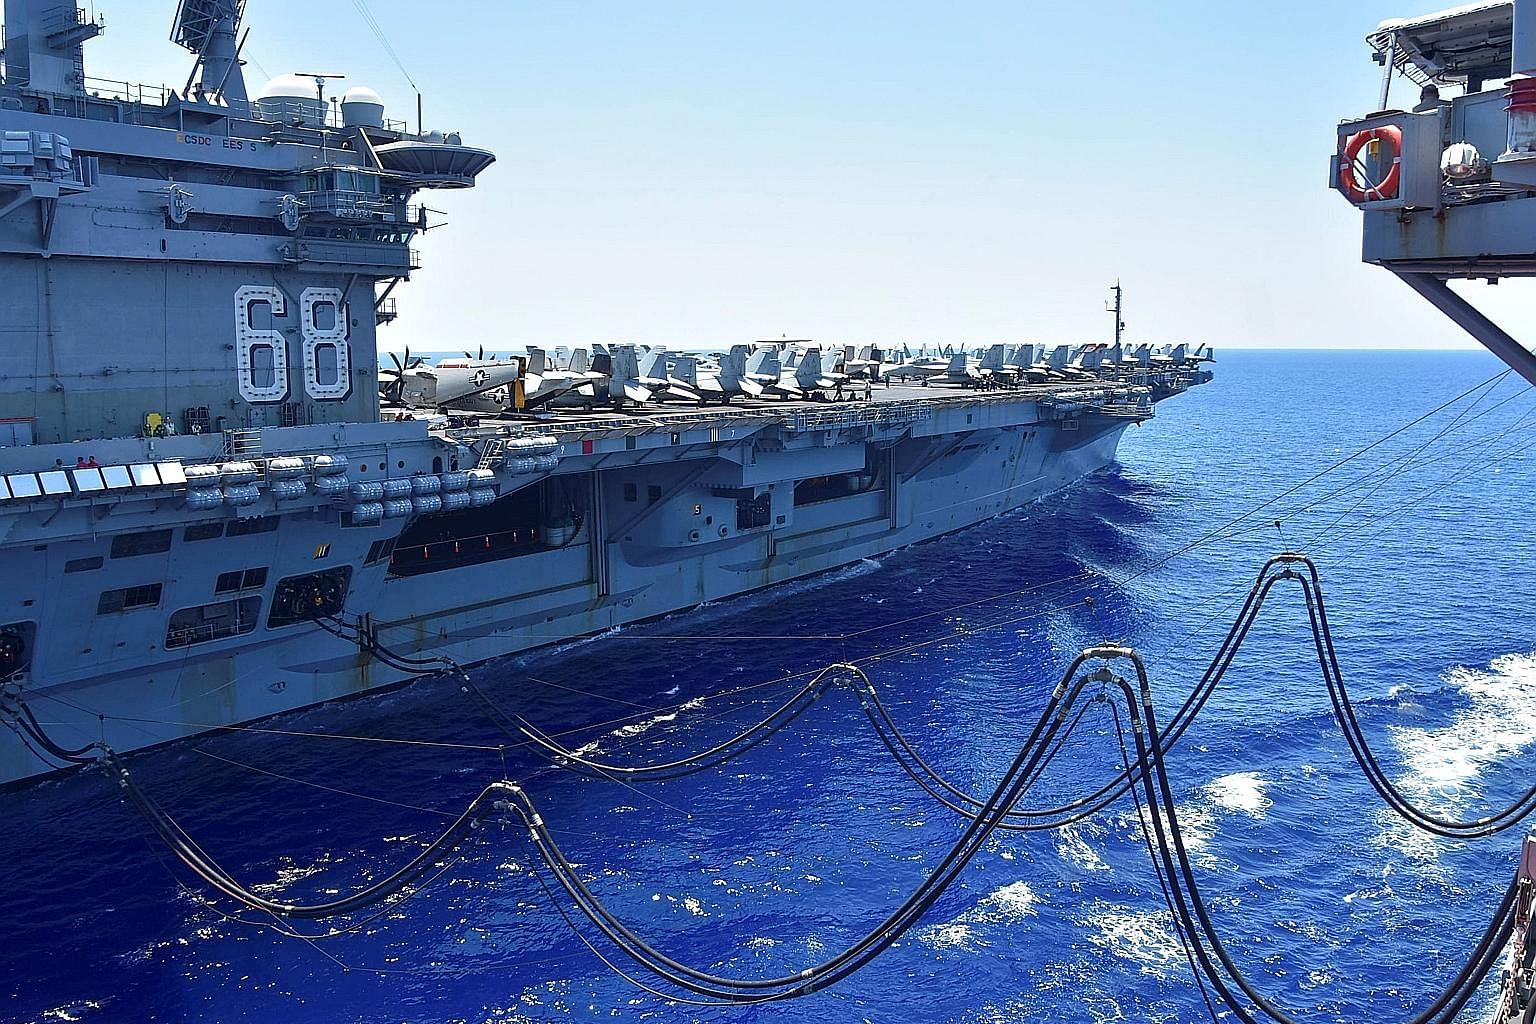 US Navy aircraft carrier USS Nimitz being refuelled in the South China Sea last month. The US considers Chinese claims to the waters enclosed by the nine-dash line in a Chinese map to be illegal, while China asserts that its claims are consistent wit